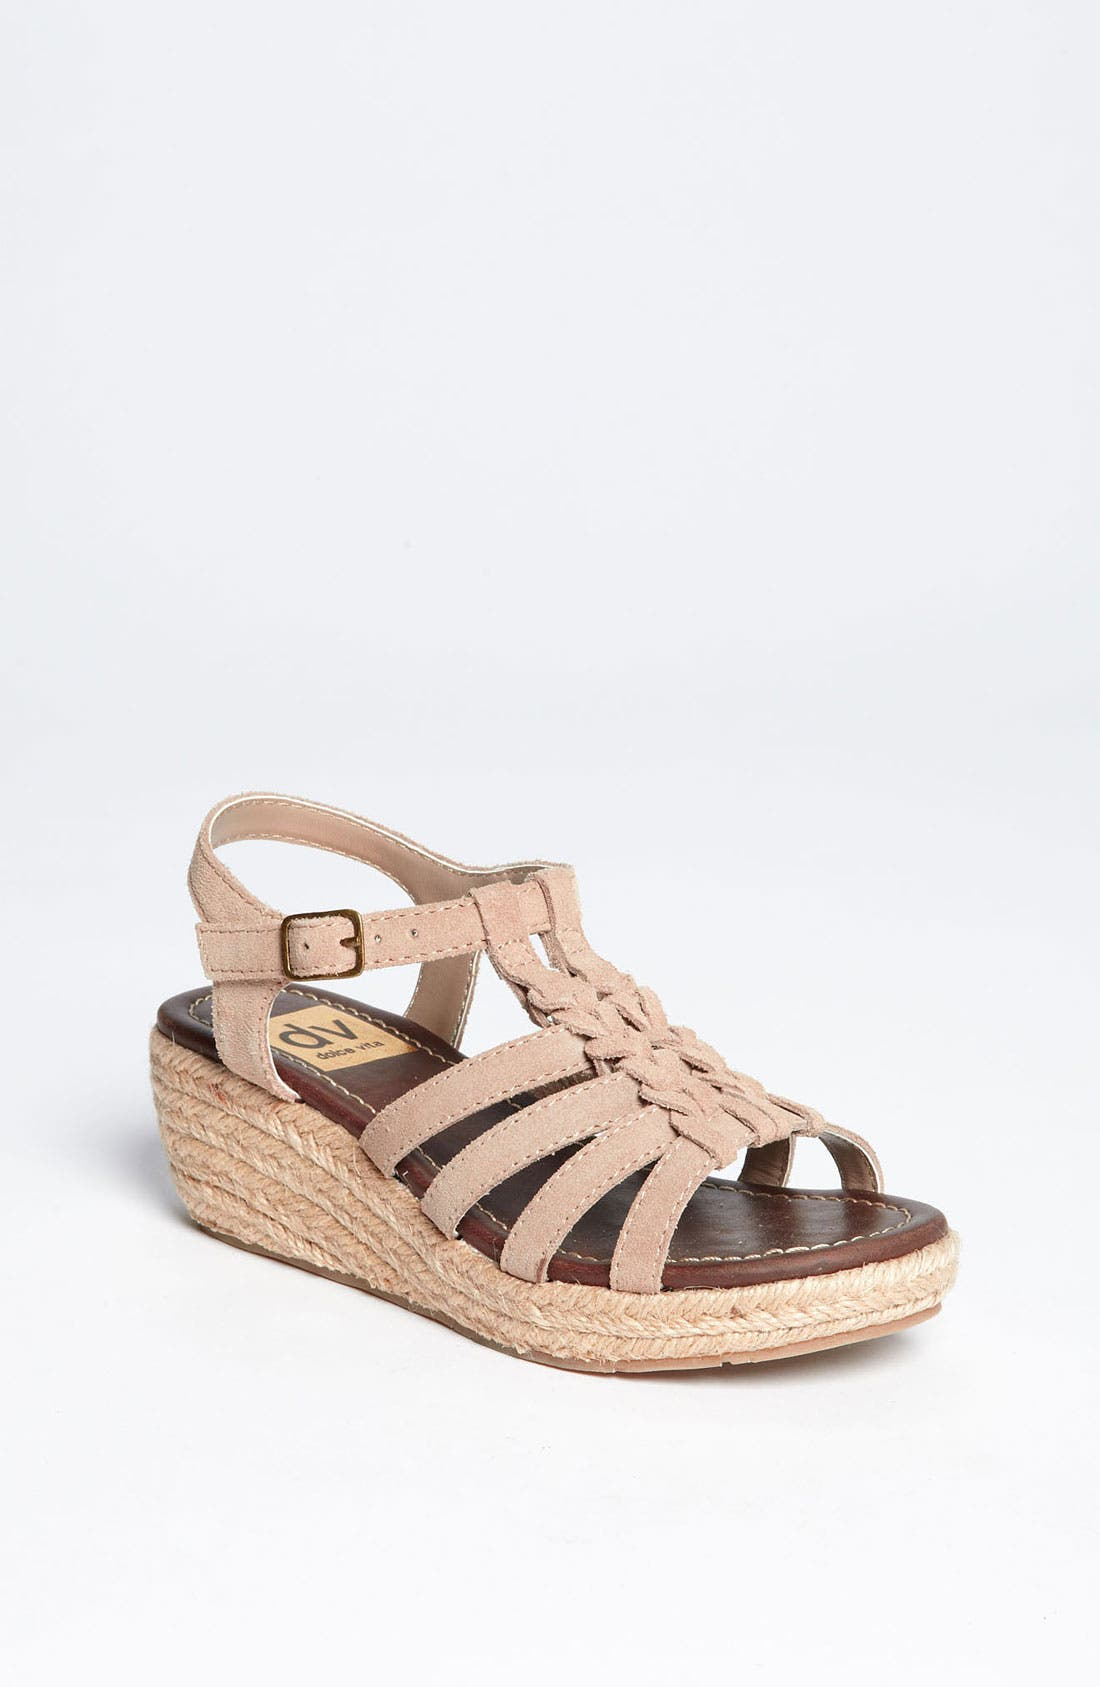 Alternate Image 1 Selected - DV by Dolce Vita 'Taz' Sandal (Toddler, Little Kid & Big Kid)